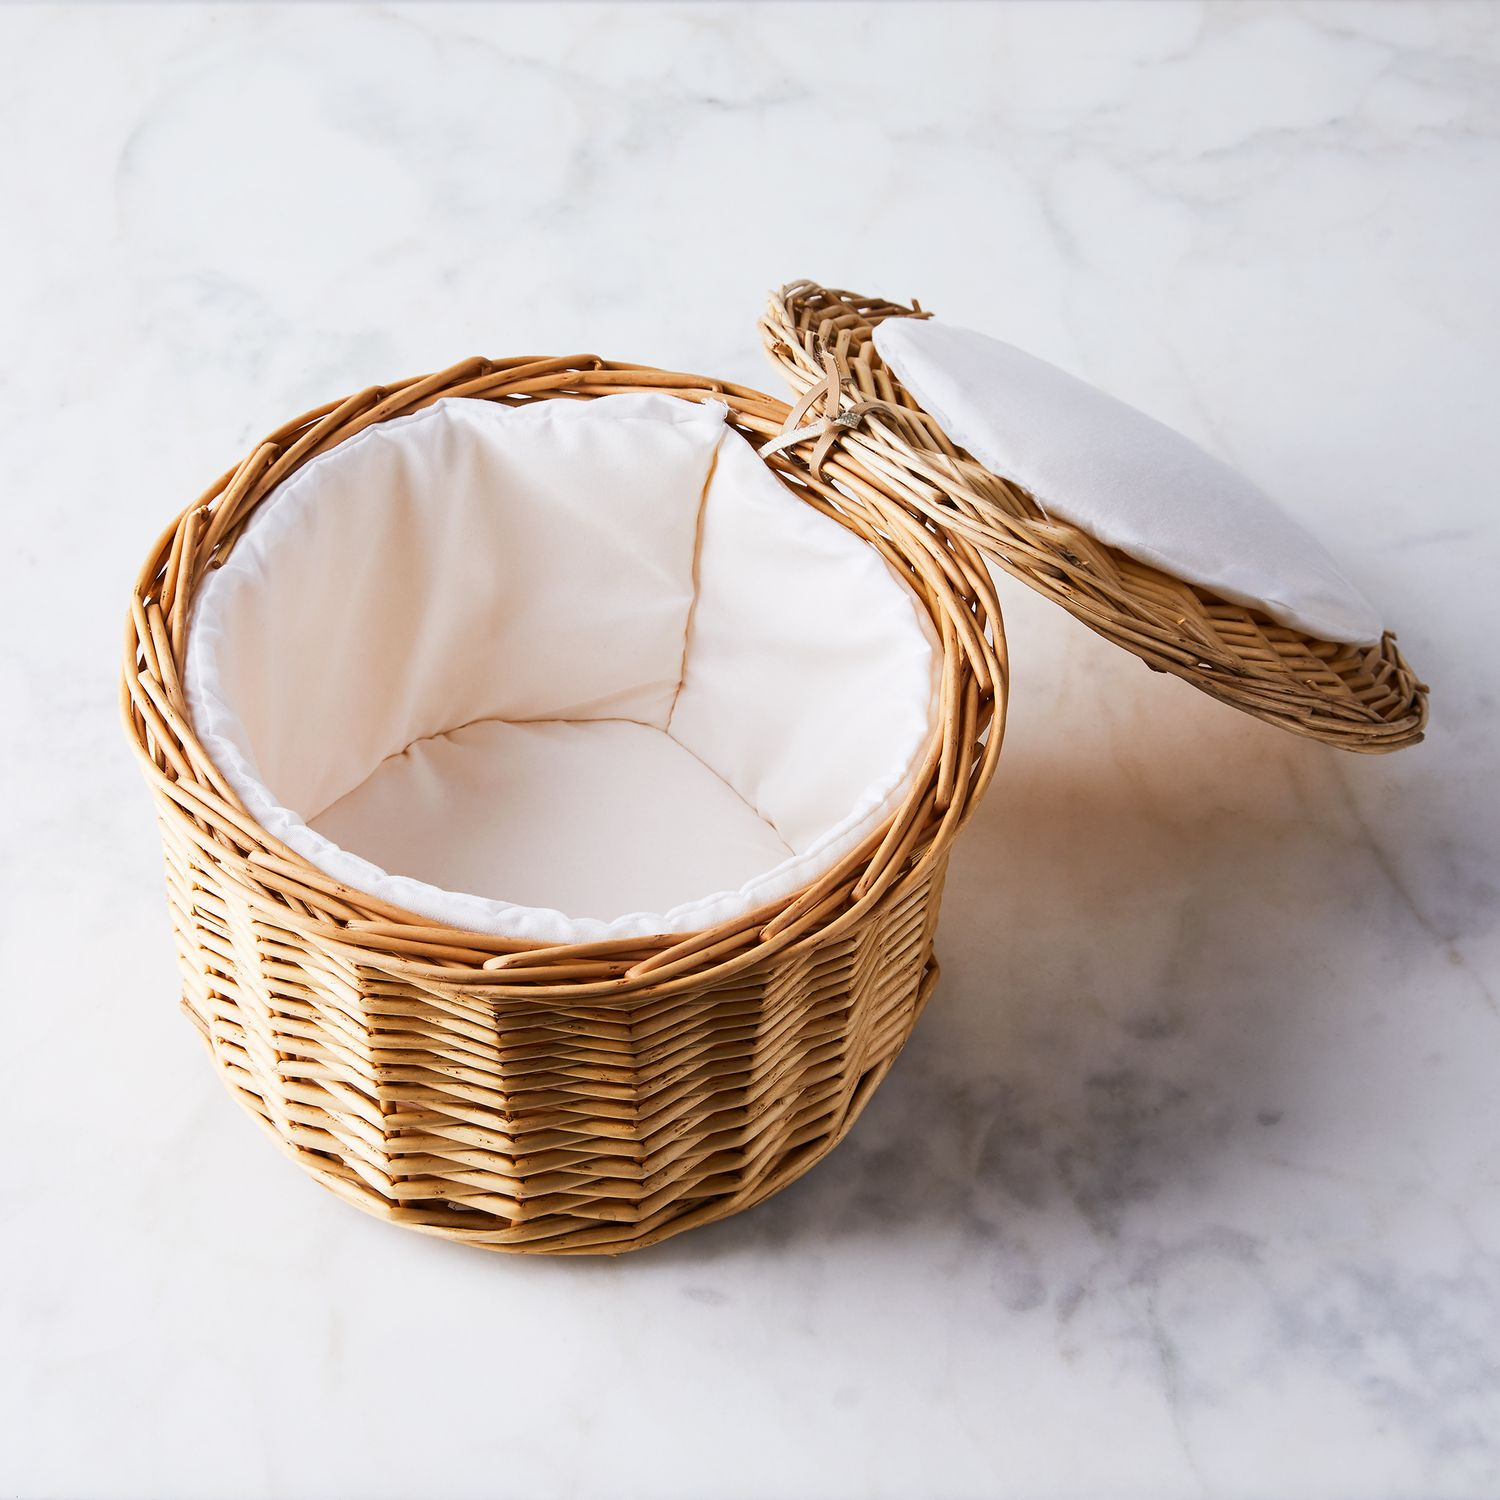 Fabric Lined Rattan Egg Basket On Food52